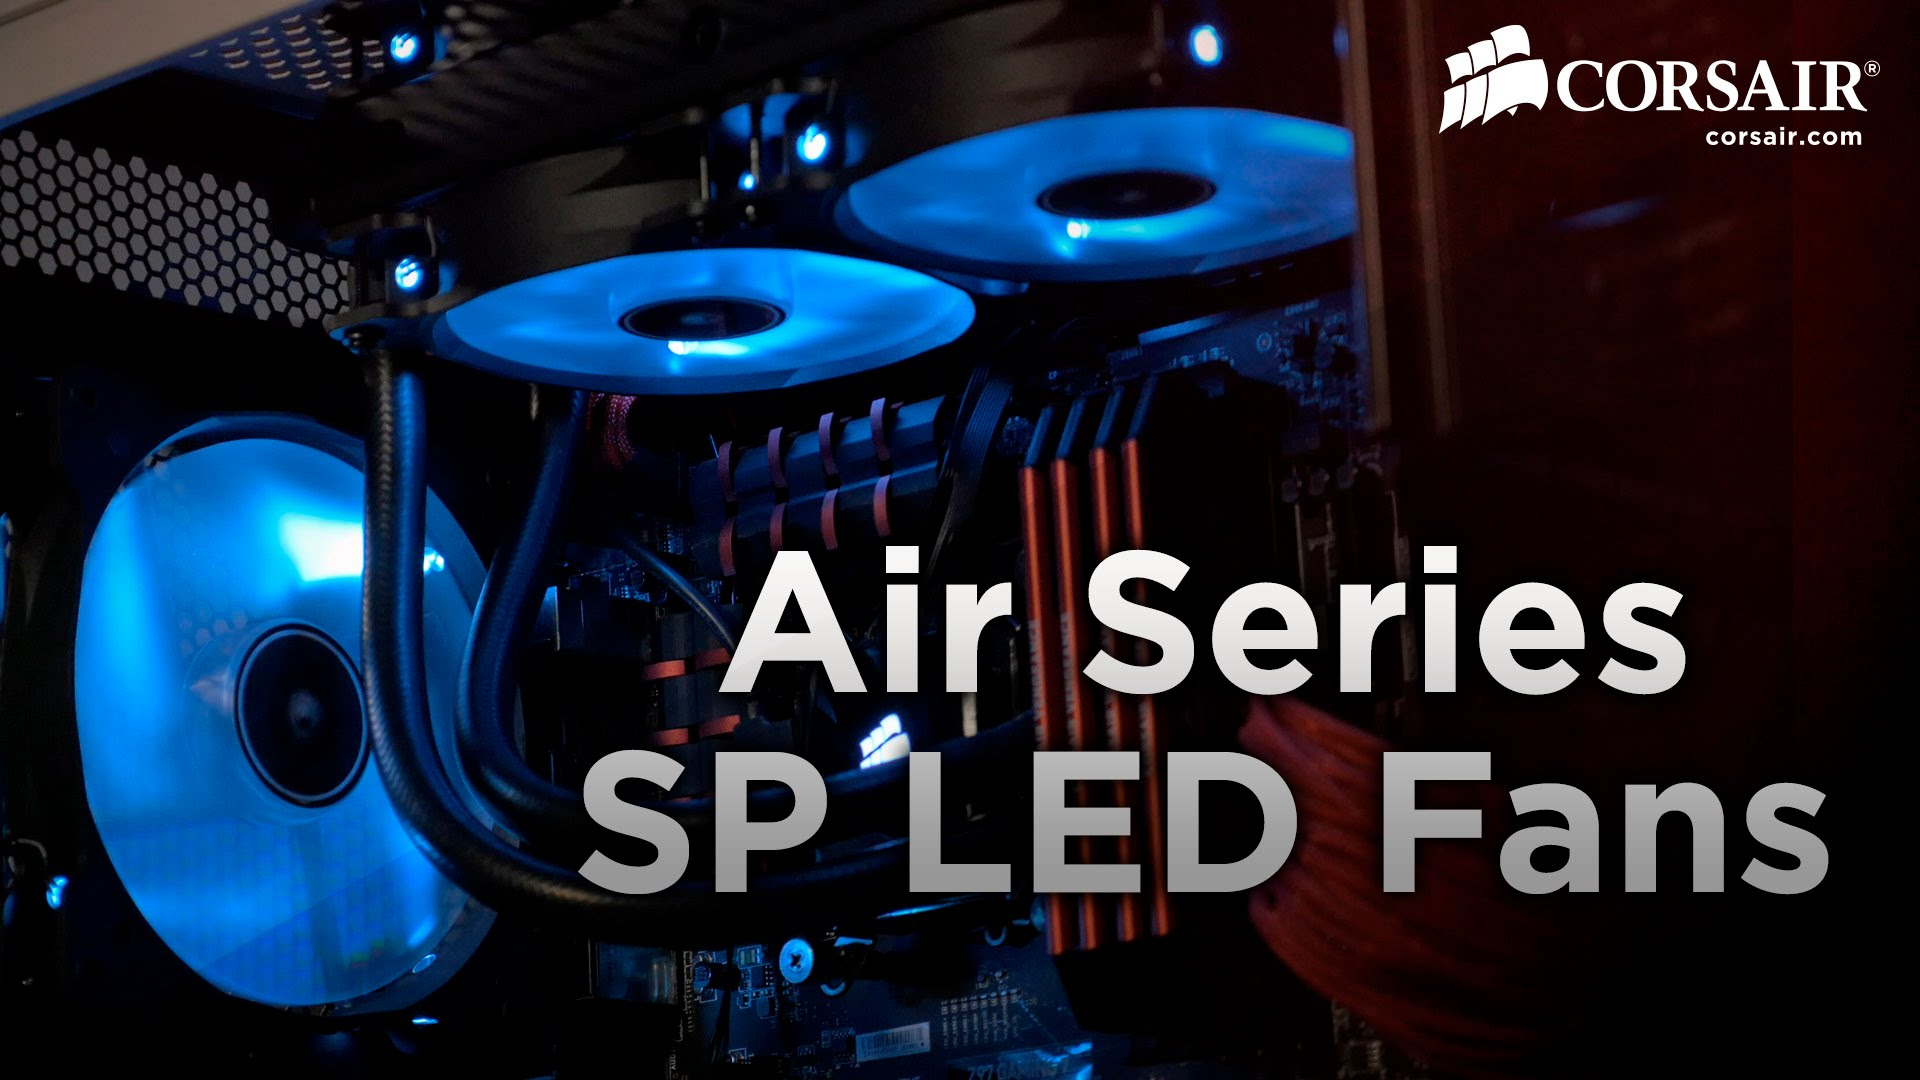 Corsair Air Series Af120 Led White Quiet Edition High Airflow 120mm Deepcool Xfan 12cm Casing Fan Red Slide 1 Of 7show Larger Image Superior Cooling Performance And Illumination